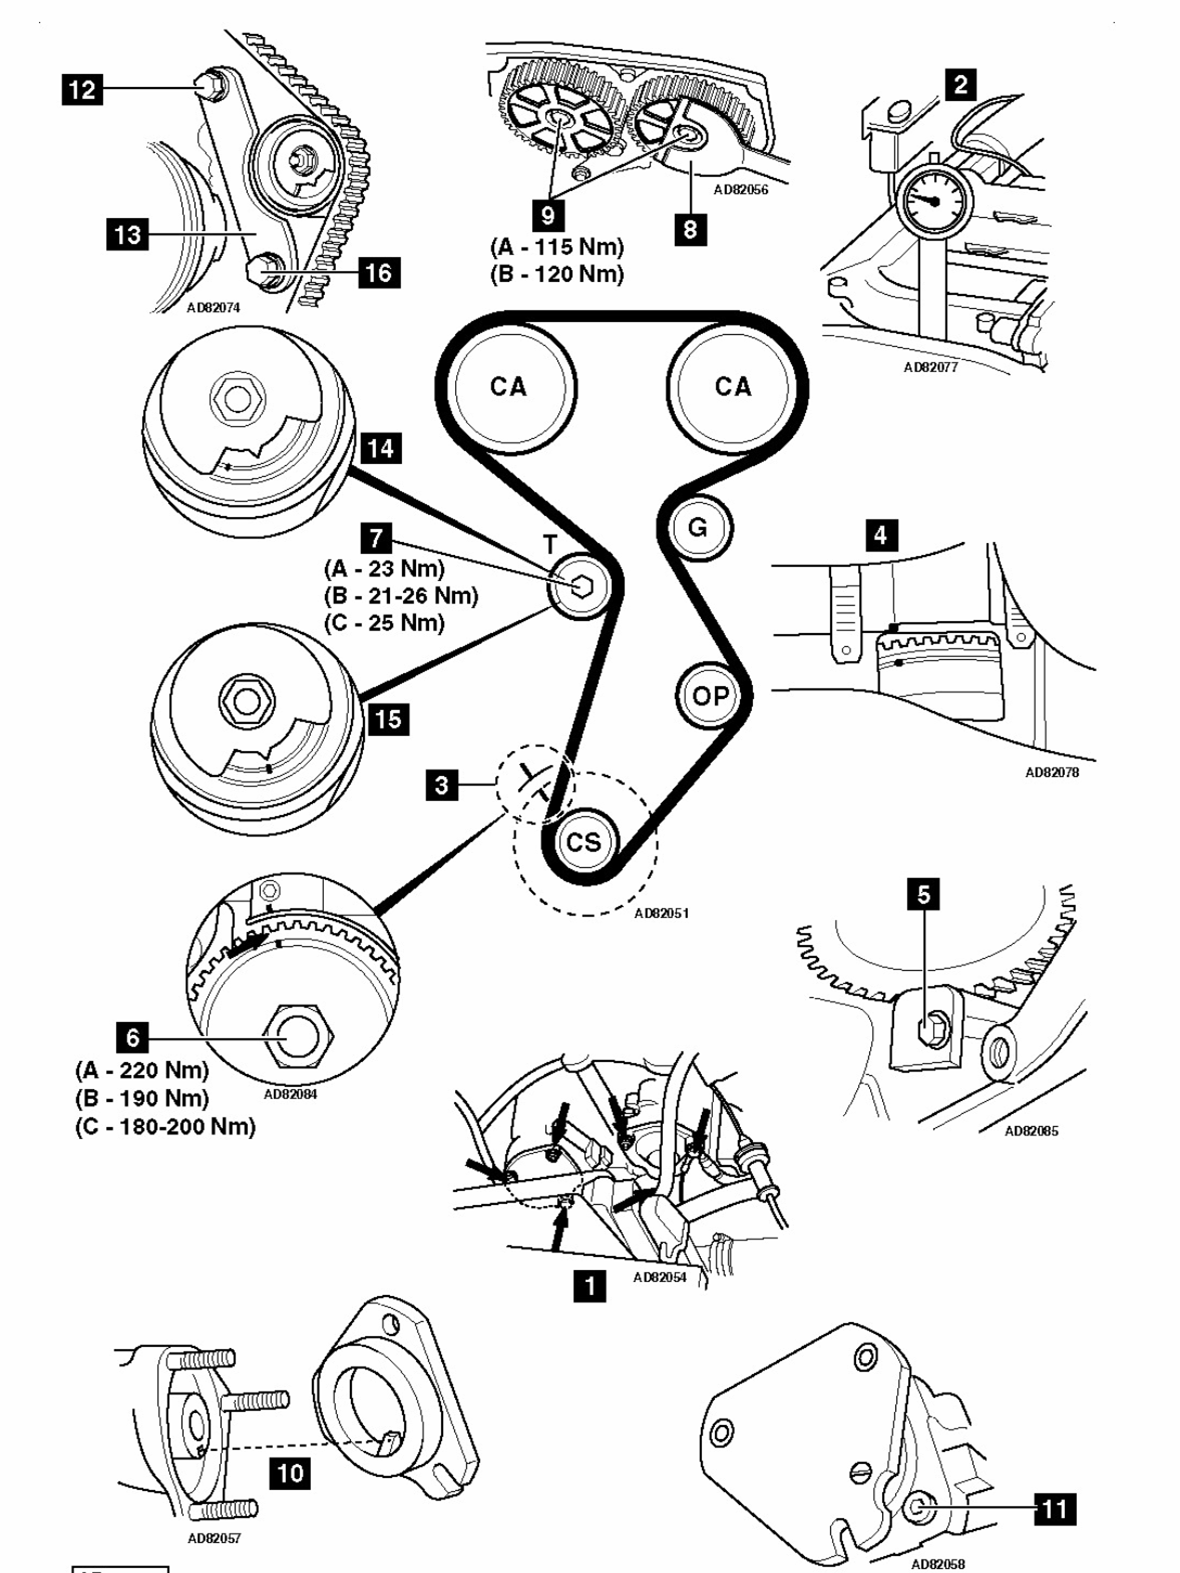 How To Replace Timing Belt On Vw Polo 6n 1 7 Sdi besides Removing and installing timing chain and chain drive for oil pump together with 97 F150 4 6 Engine Diagram likewise How To Replace Timing Chain On Peugeot 308 1 4 Vti 2010 also How To Replace Timing Belt On Vw Polo 6n 1 9 D. on vw timing marks